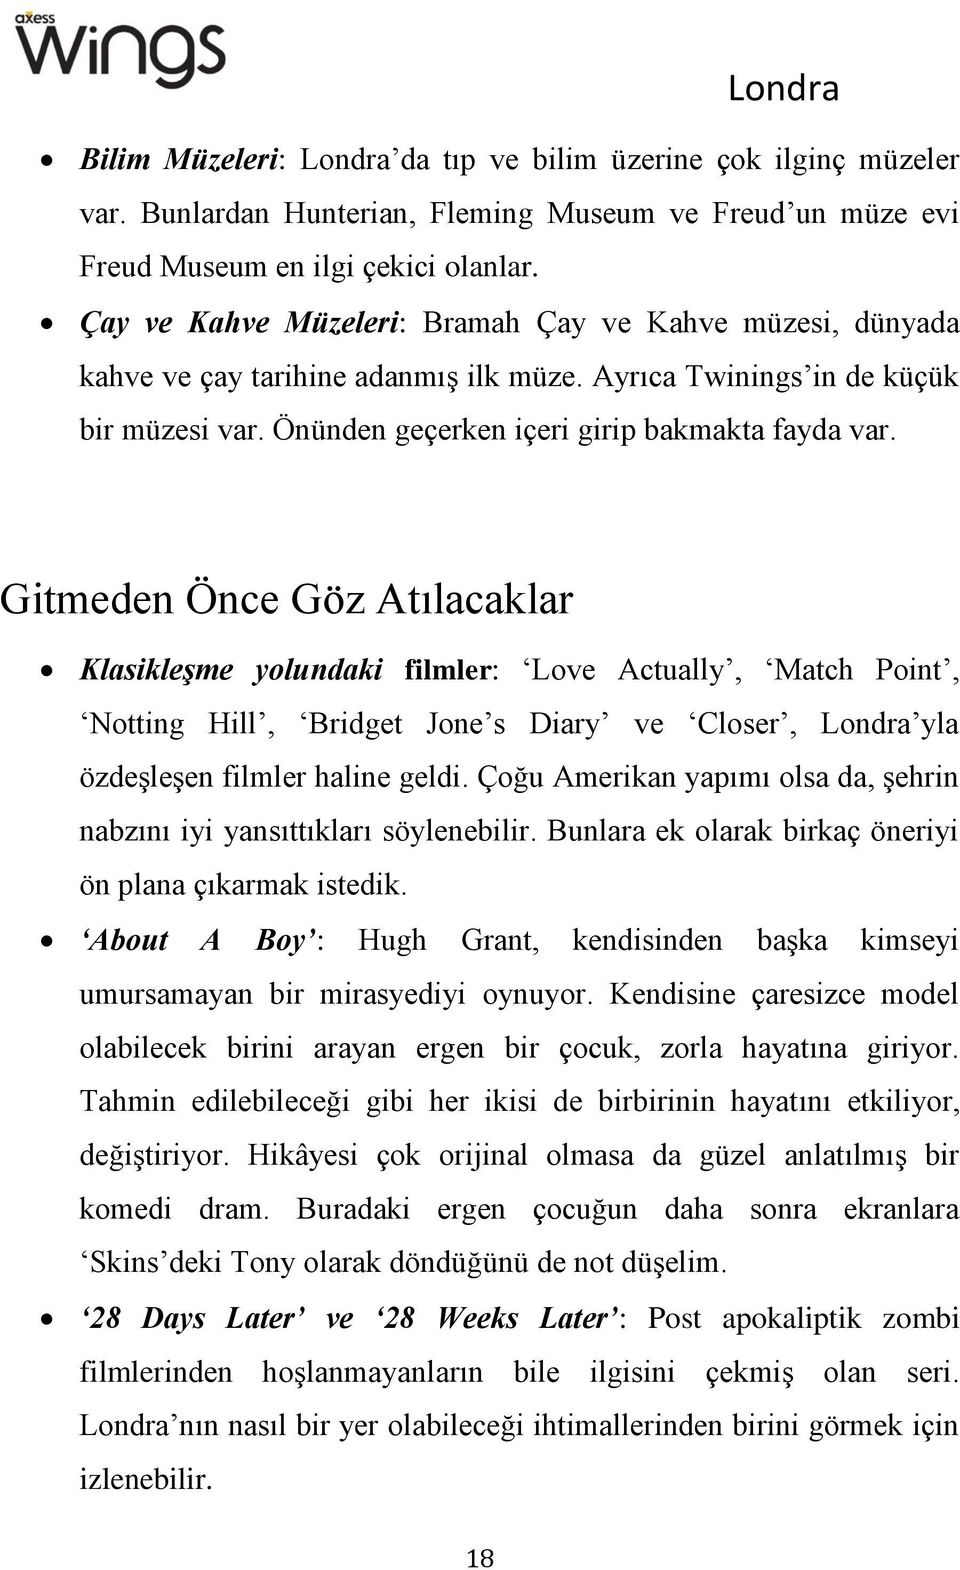 Gitmeden Önce Göz Atılacaklar Klasikleşme yolundaki filmler: Love Actually, Match Point, Notting Hill, Bridget Jone s Diary ve Closer, Londra yla özdeşleşen filmler haline geldi.